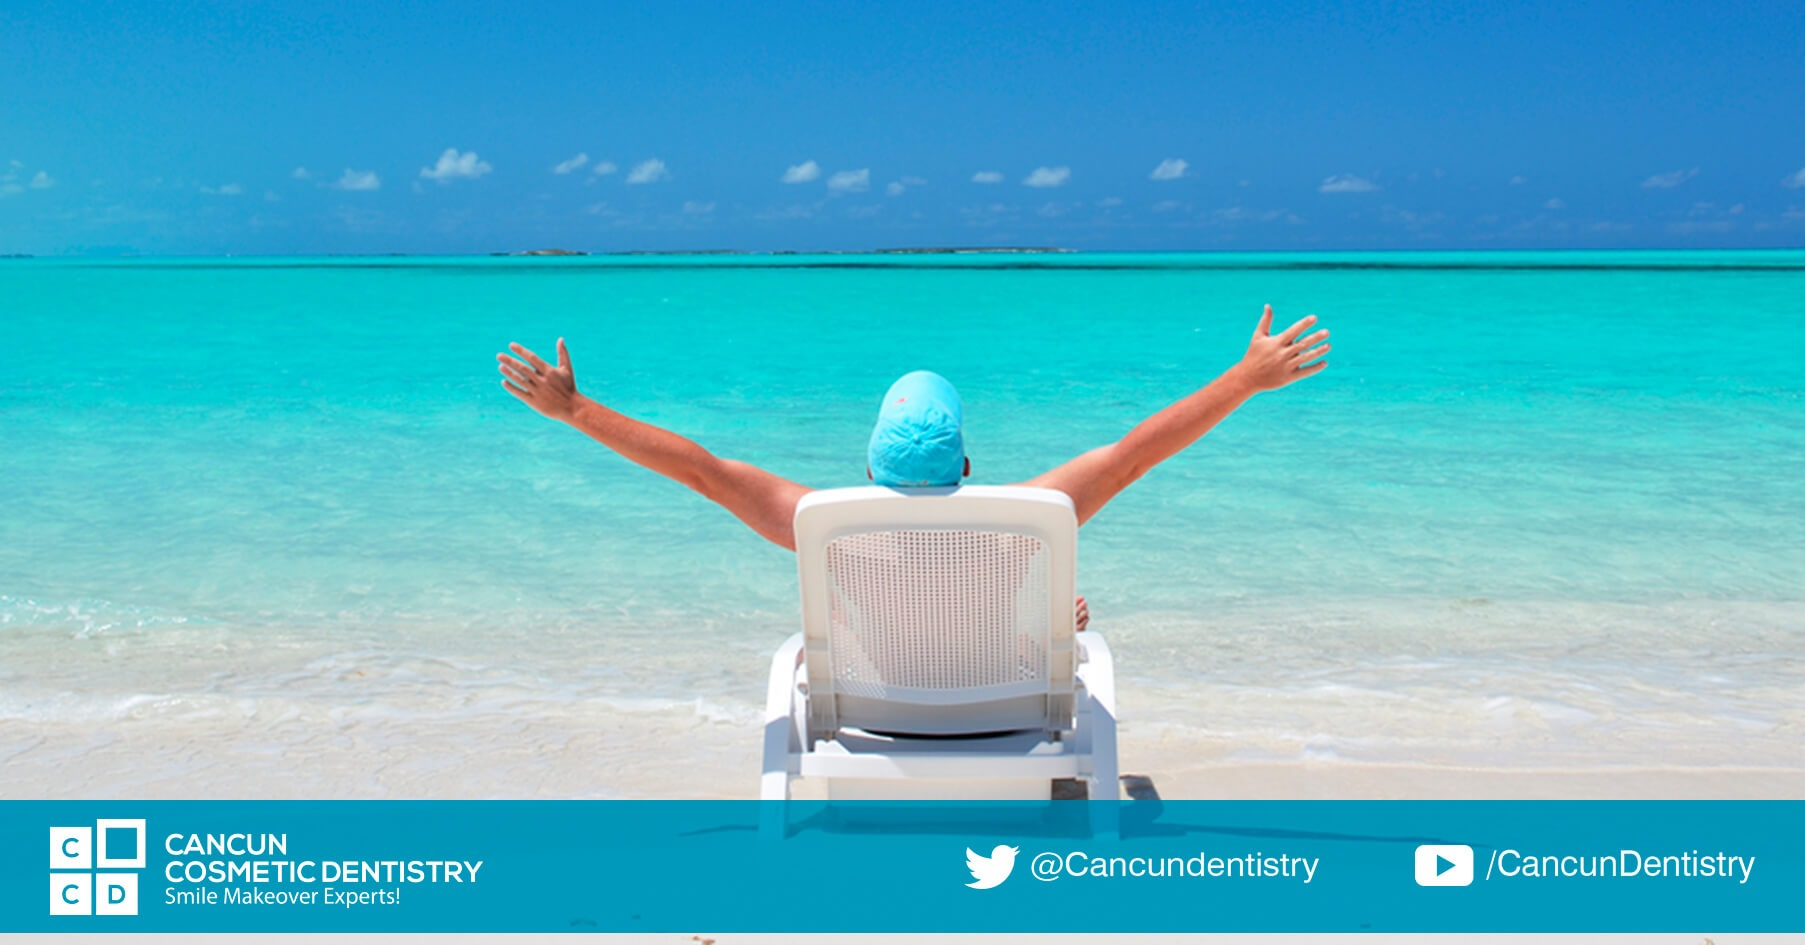 Despite sensationalist media, Cancun remains the top vacation spot for Americans!